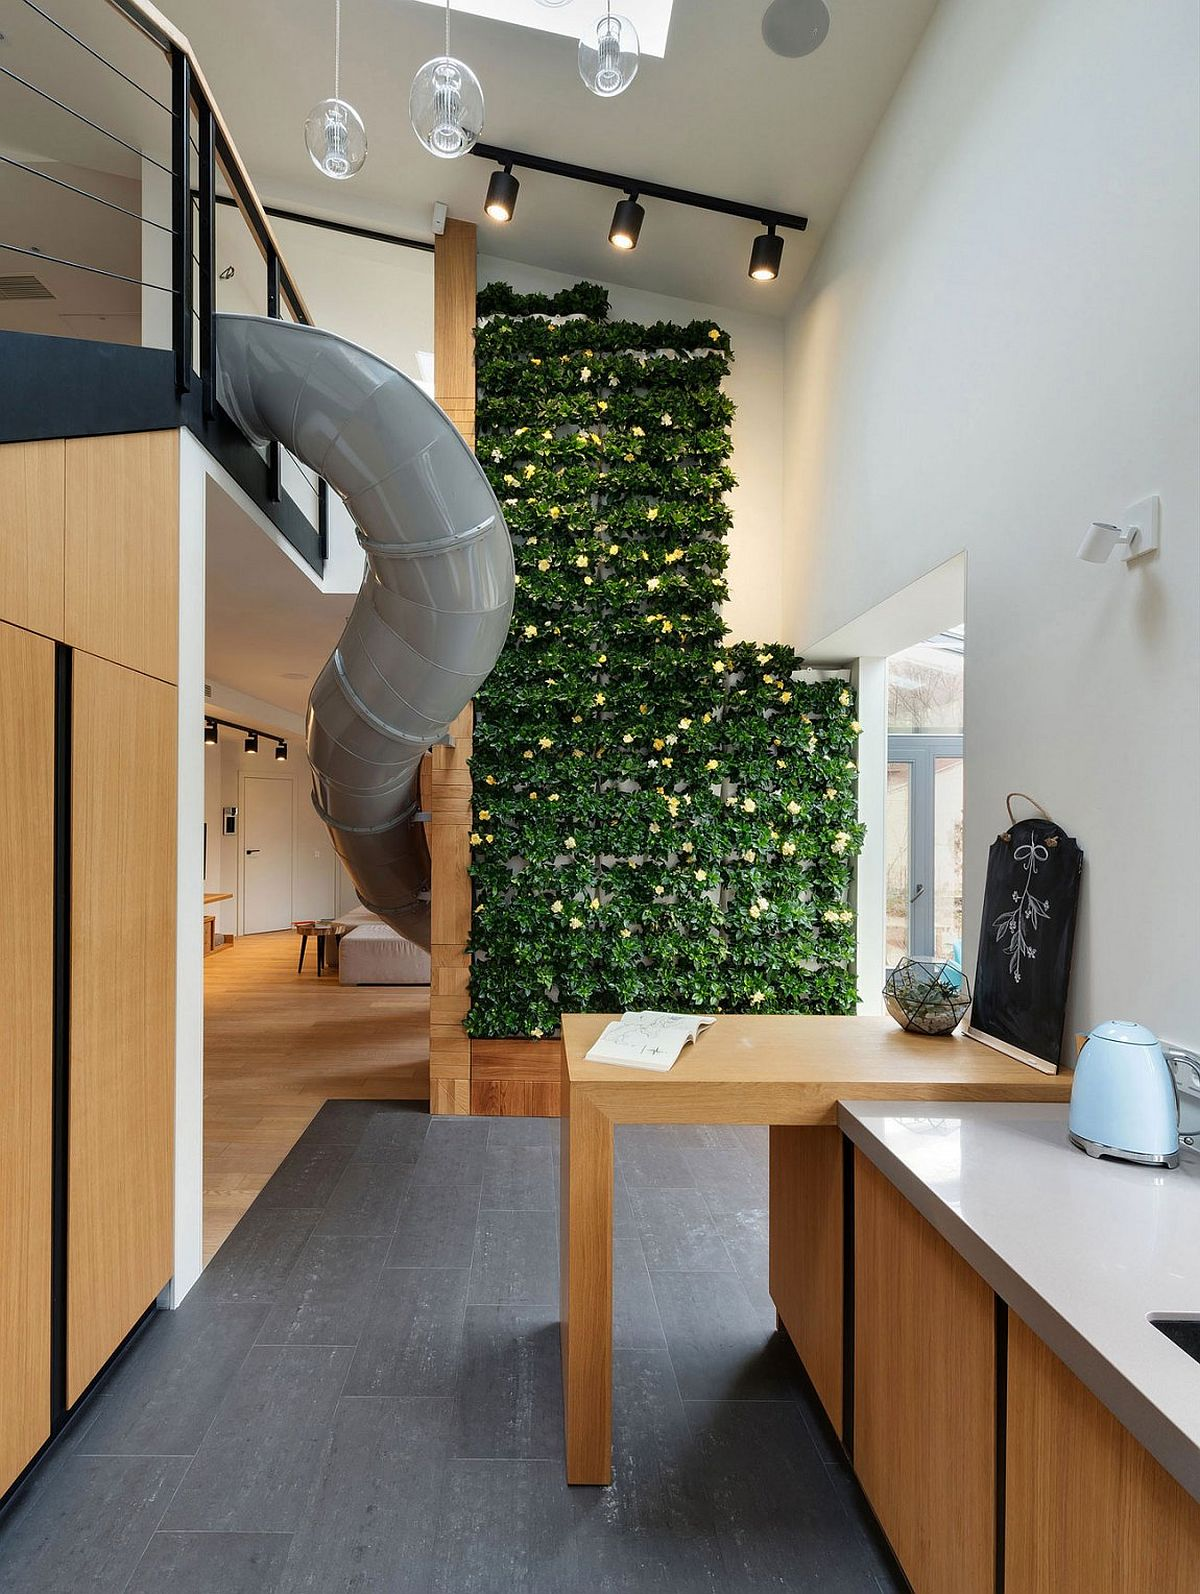 Green wall and slide shape a stunning and fun apartment in Ukraine